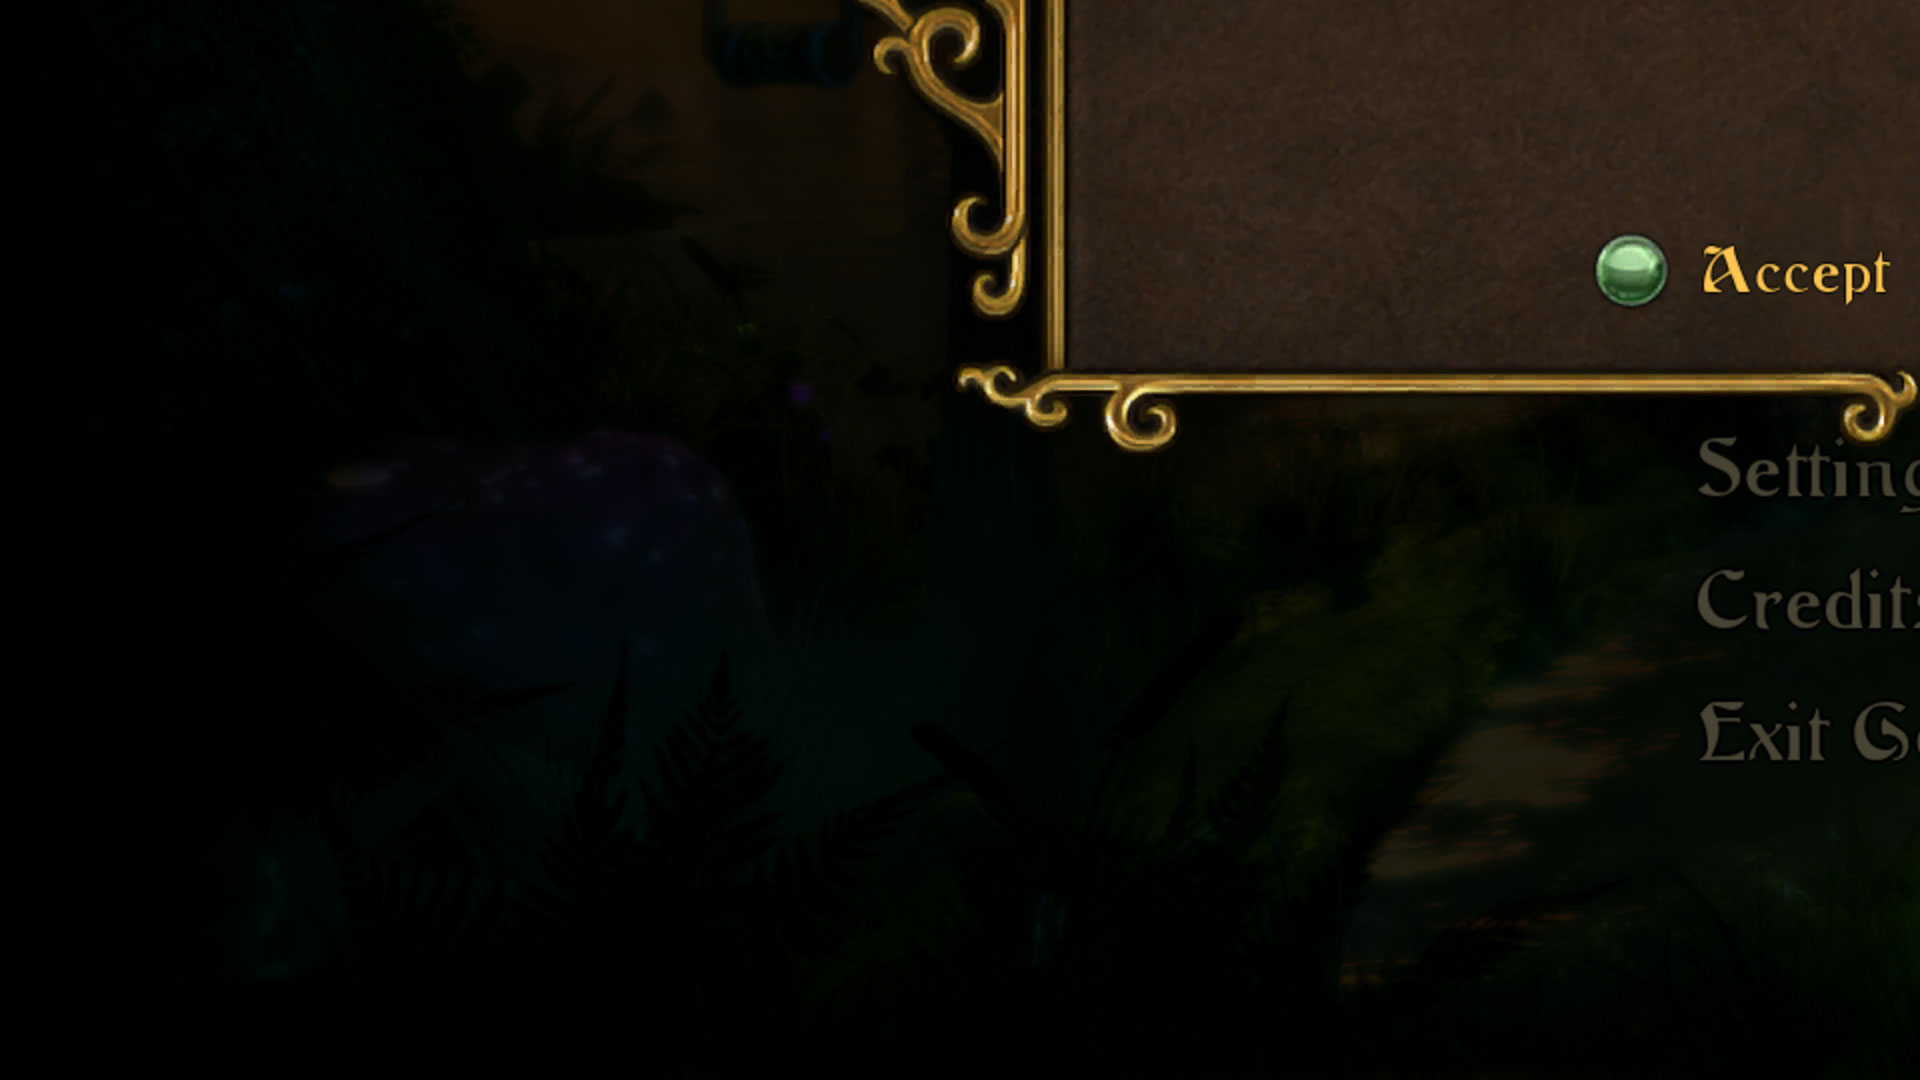 ⚠ [BUG] Transform filter CROPS instead of scaling - NVIDIA